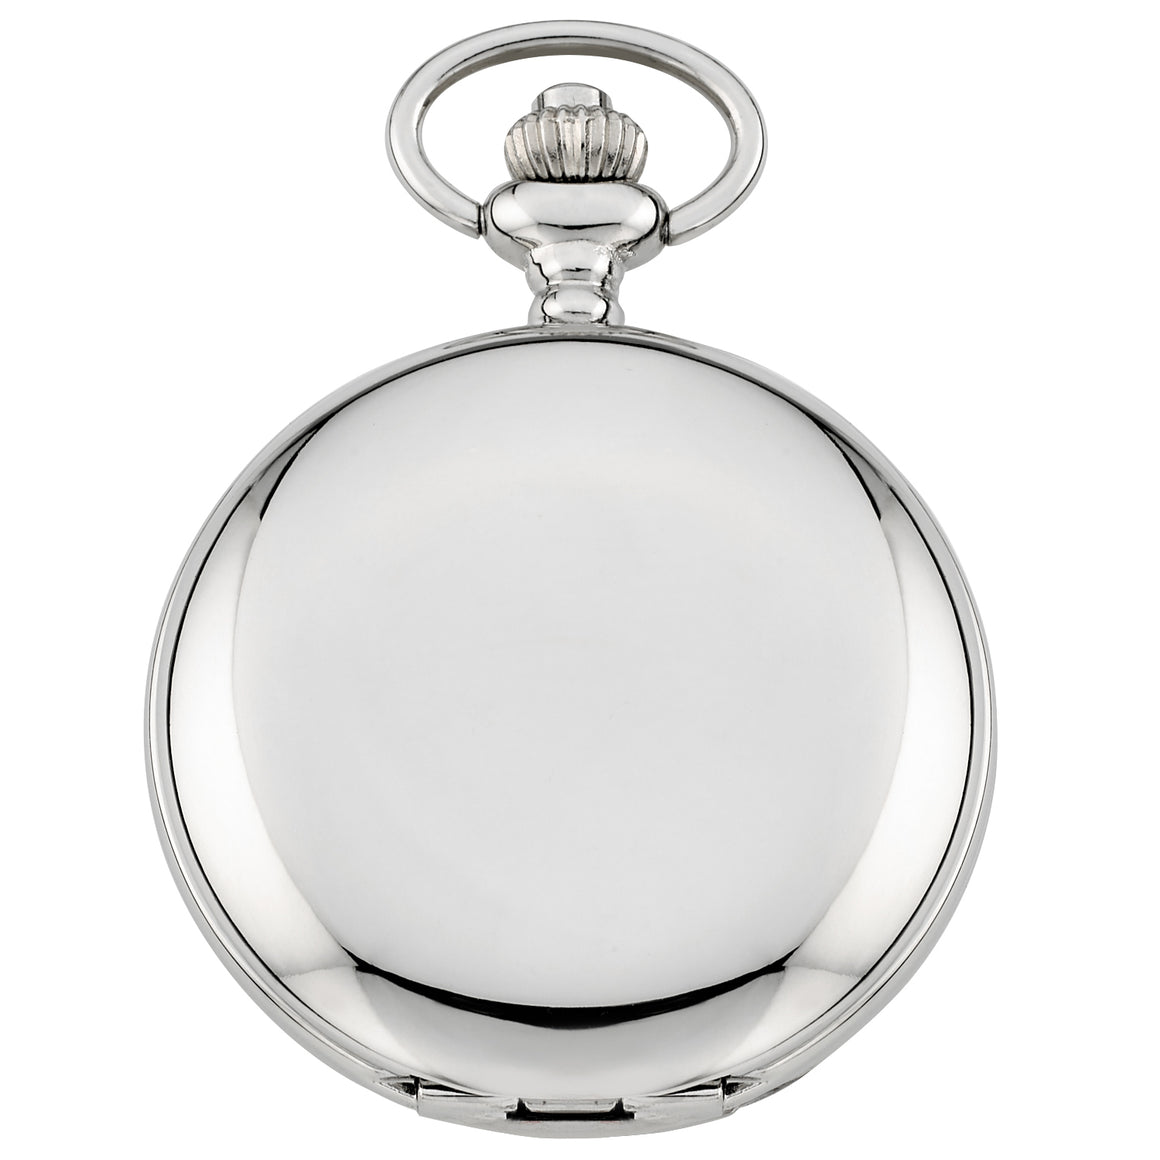 Gotham Men's Silver-Tone Railroad Polished Finish Covered Quartz Pocket Watch # GWC15044SB - Gotham Watch